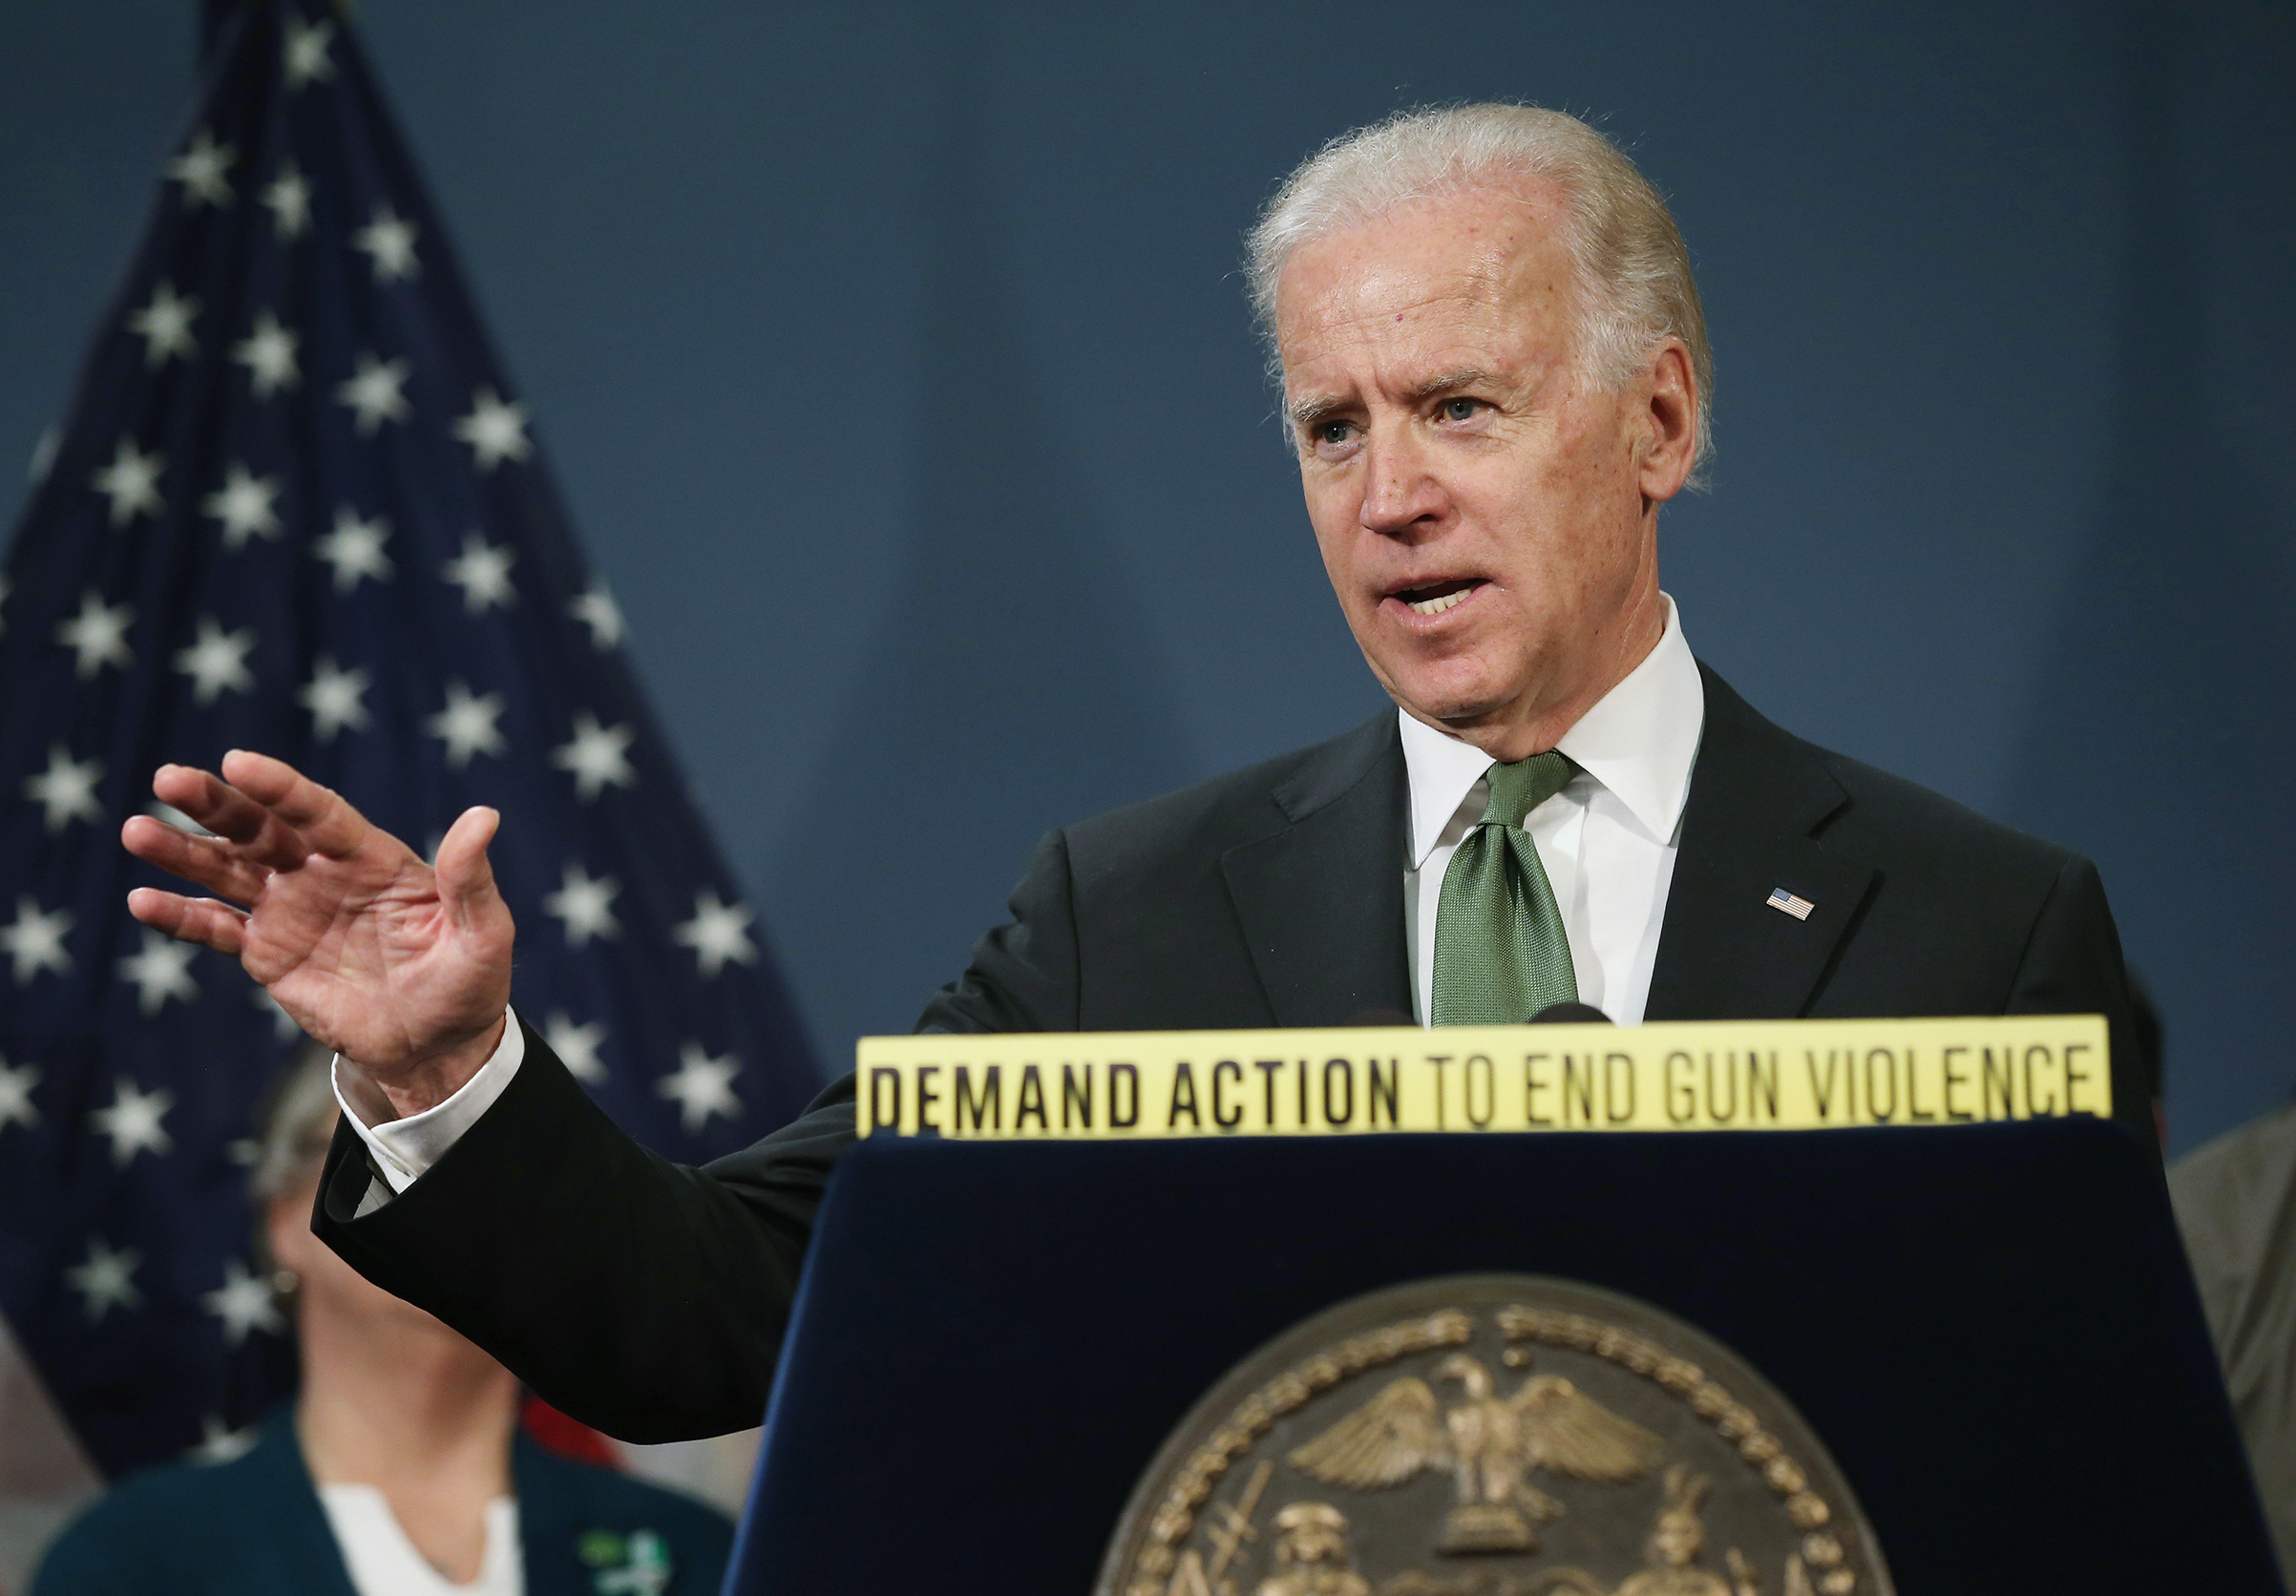 Former Vice President Joe Biden speaks in favor of gun reform legislation at a press conference with family members of Sandy Hook shooting victims on March 21, 2013 in New York City.